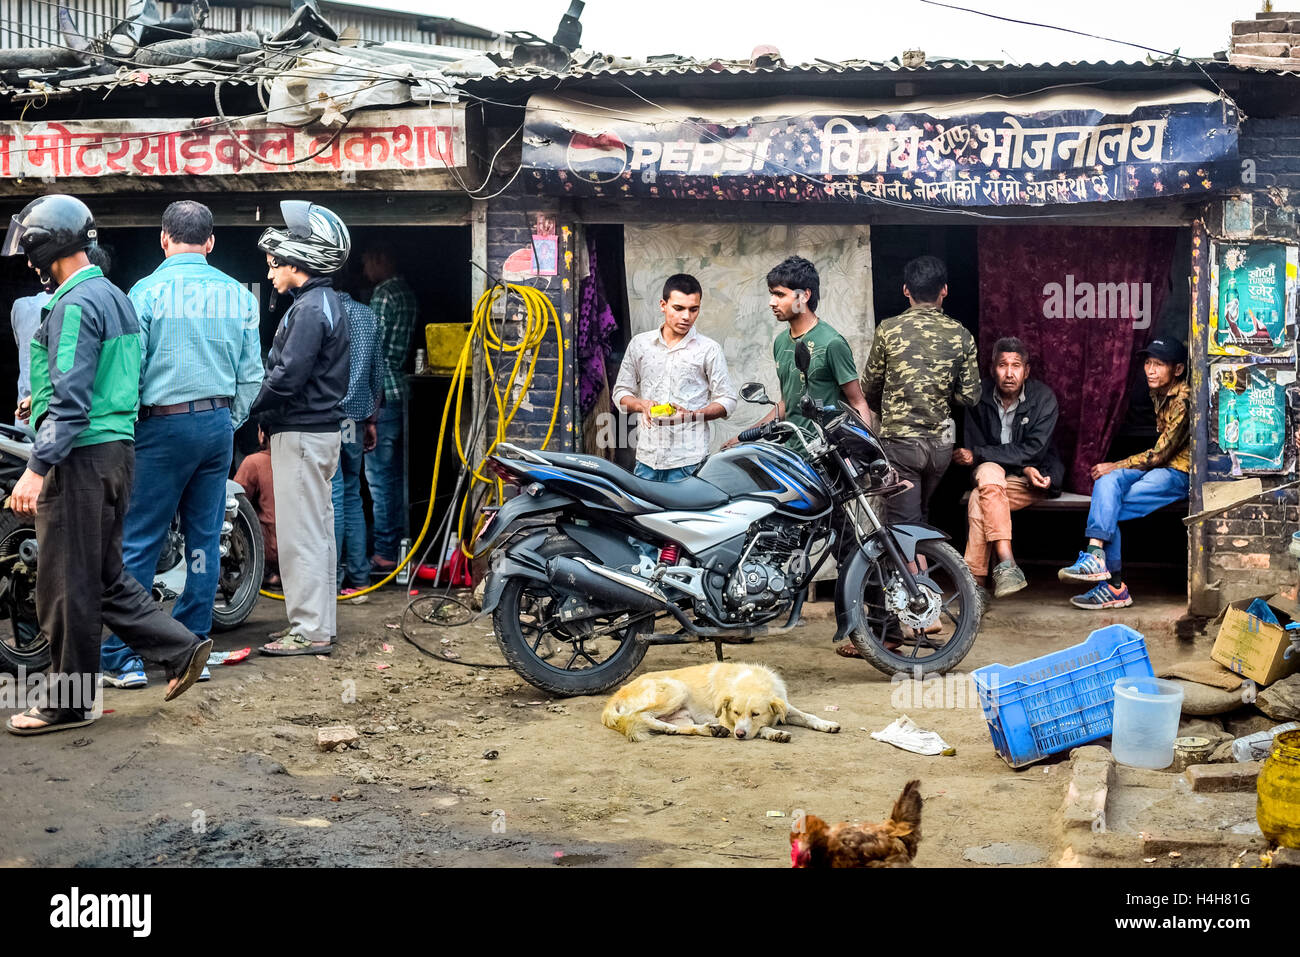 A crowd gathers at a motorcycle repair shop on Sunday morning in the outskirts of Kathmandu, Nepal. - Stock Image